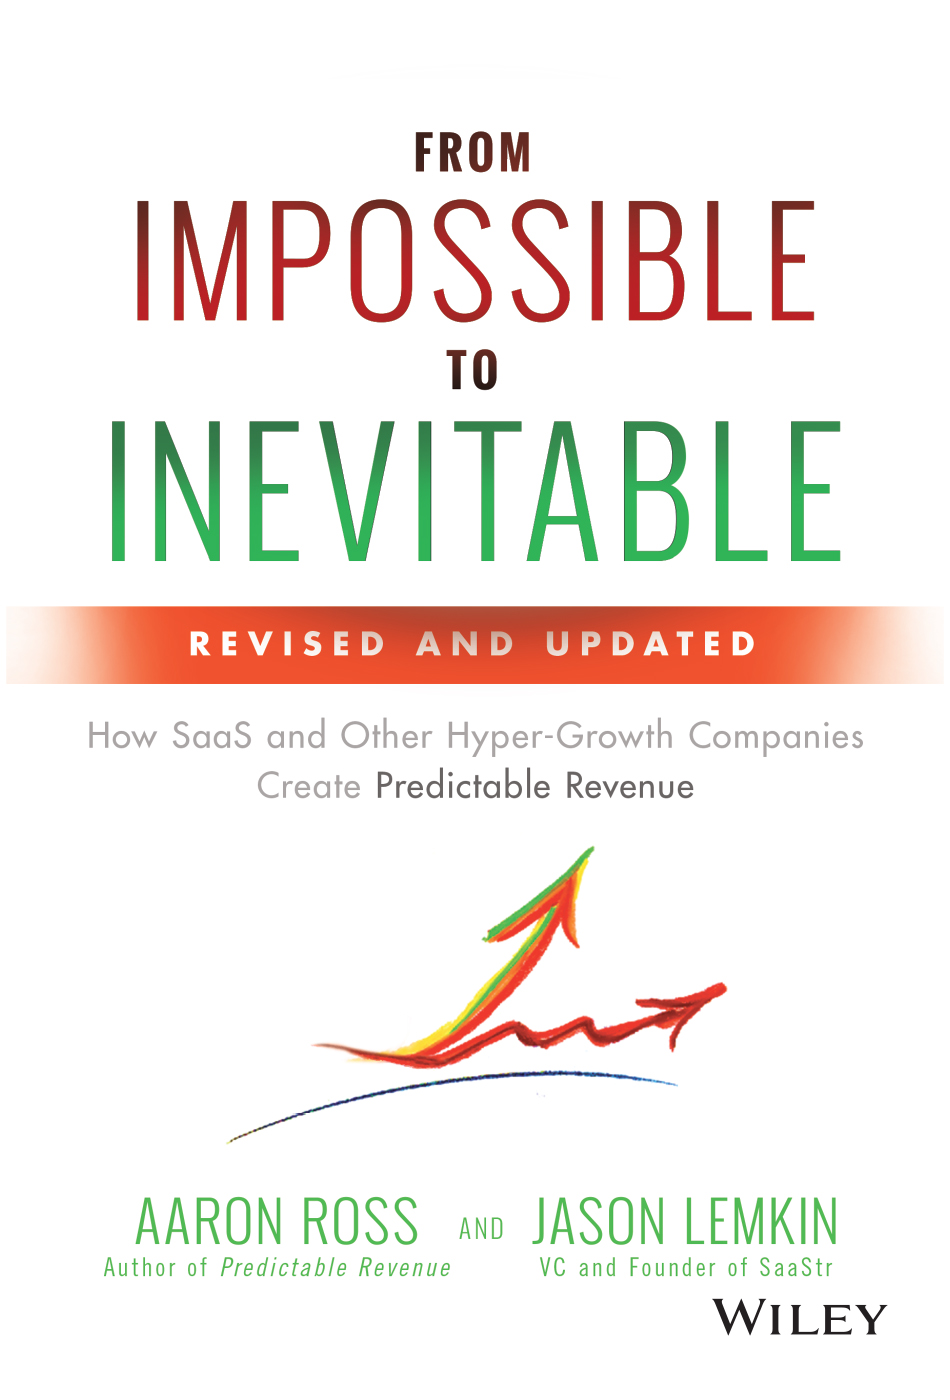 from impossible to inevitable book cover-fiti-new